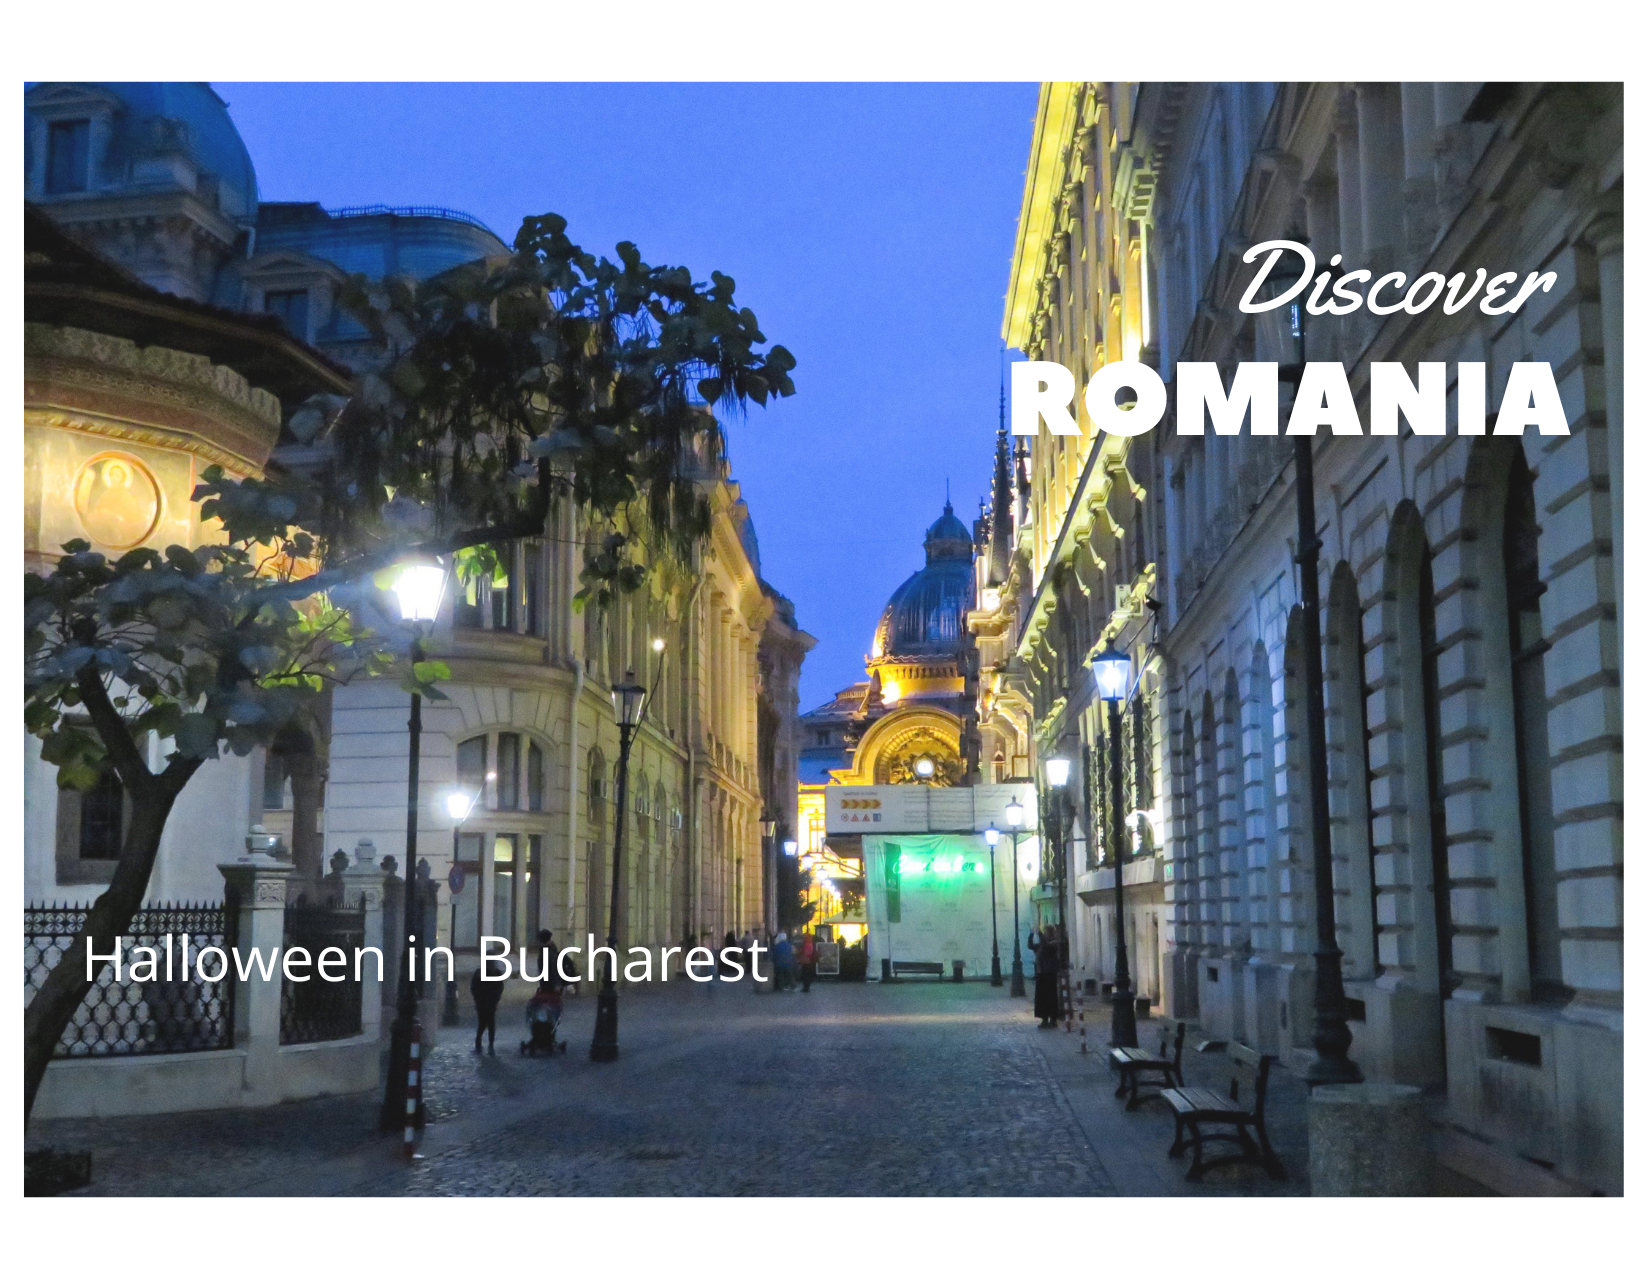 Discover Romania: Day 1 – Halloween in Bucharest